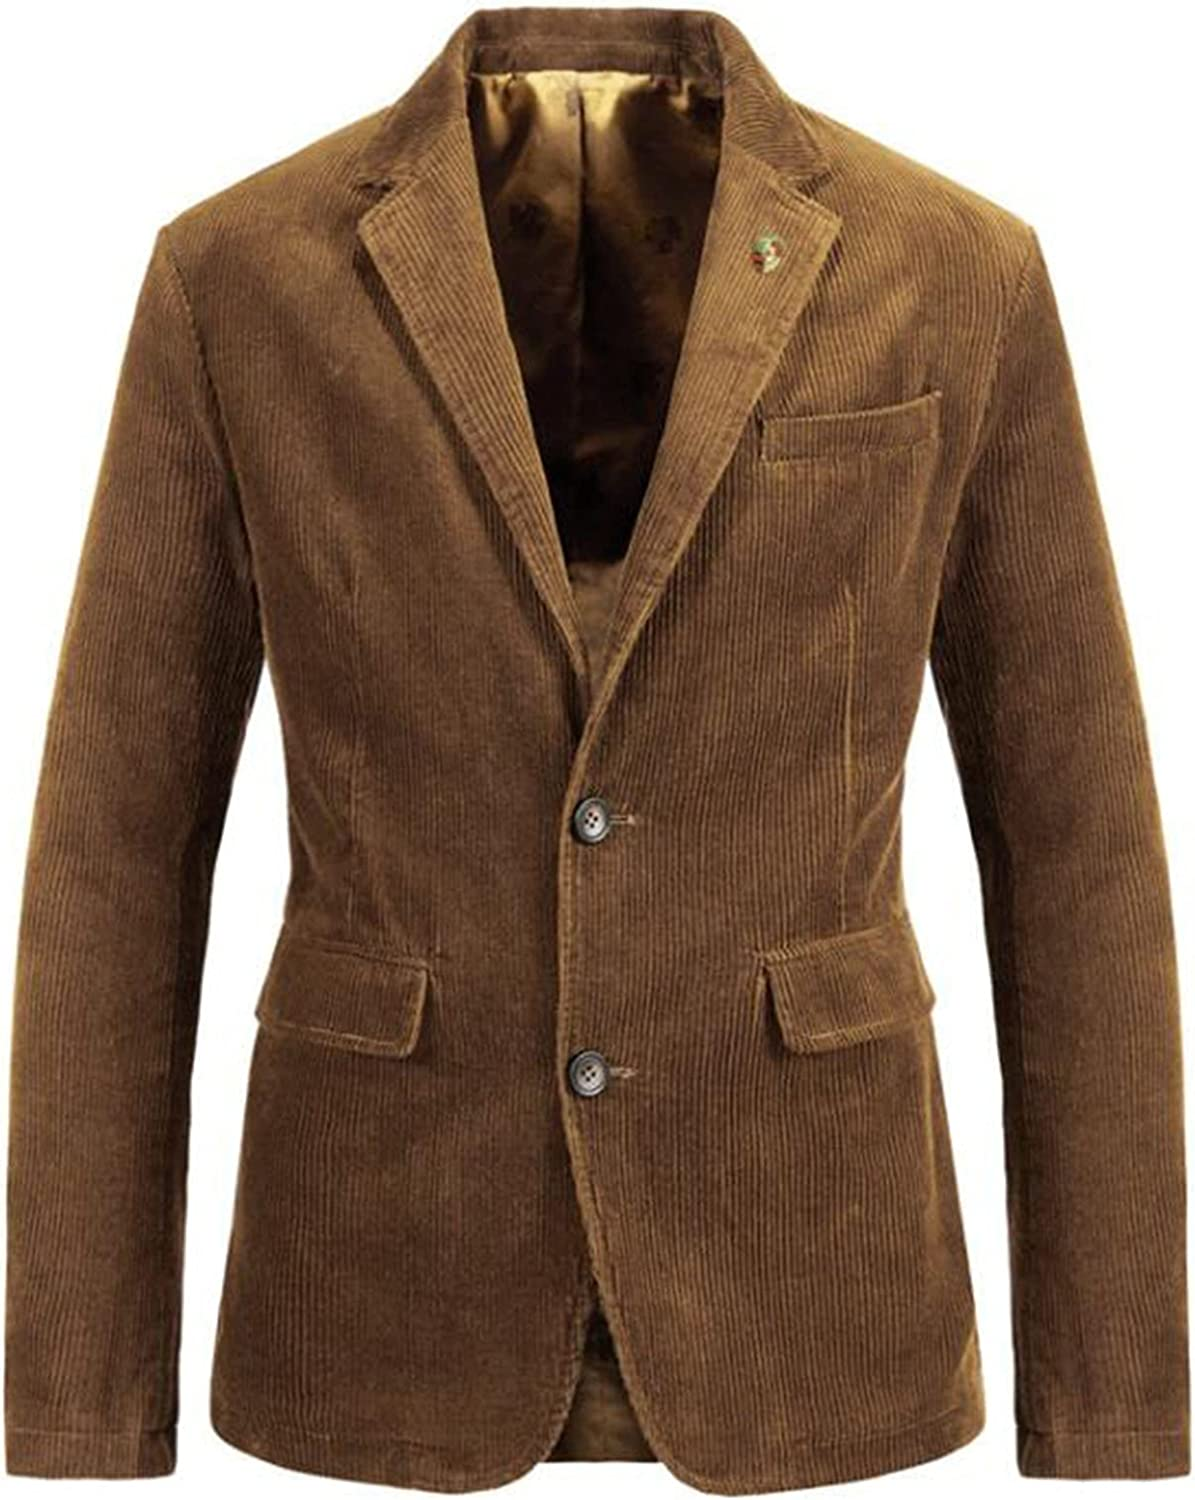 Mens Casual Corduroy Blazer Slim Fit 2 Button Single-breasted Long Sleeve Suits Solid Vintage Jackets Tops, Lightweight Blazer Sports Jacket retro casual work clothes (Color : Coffee, Size : XS)